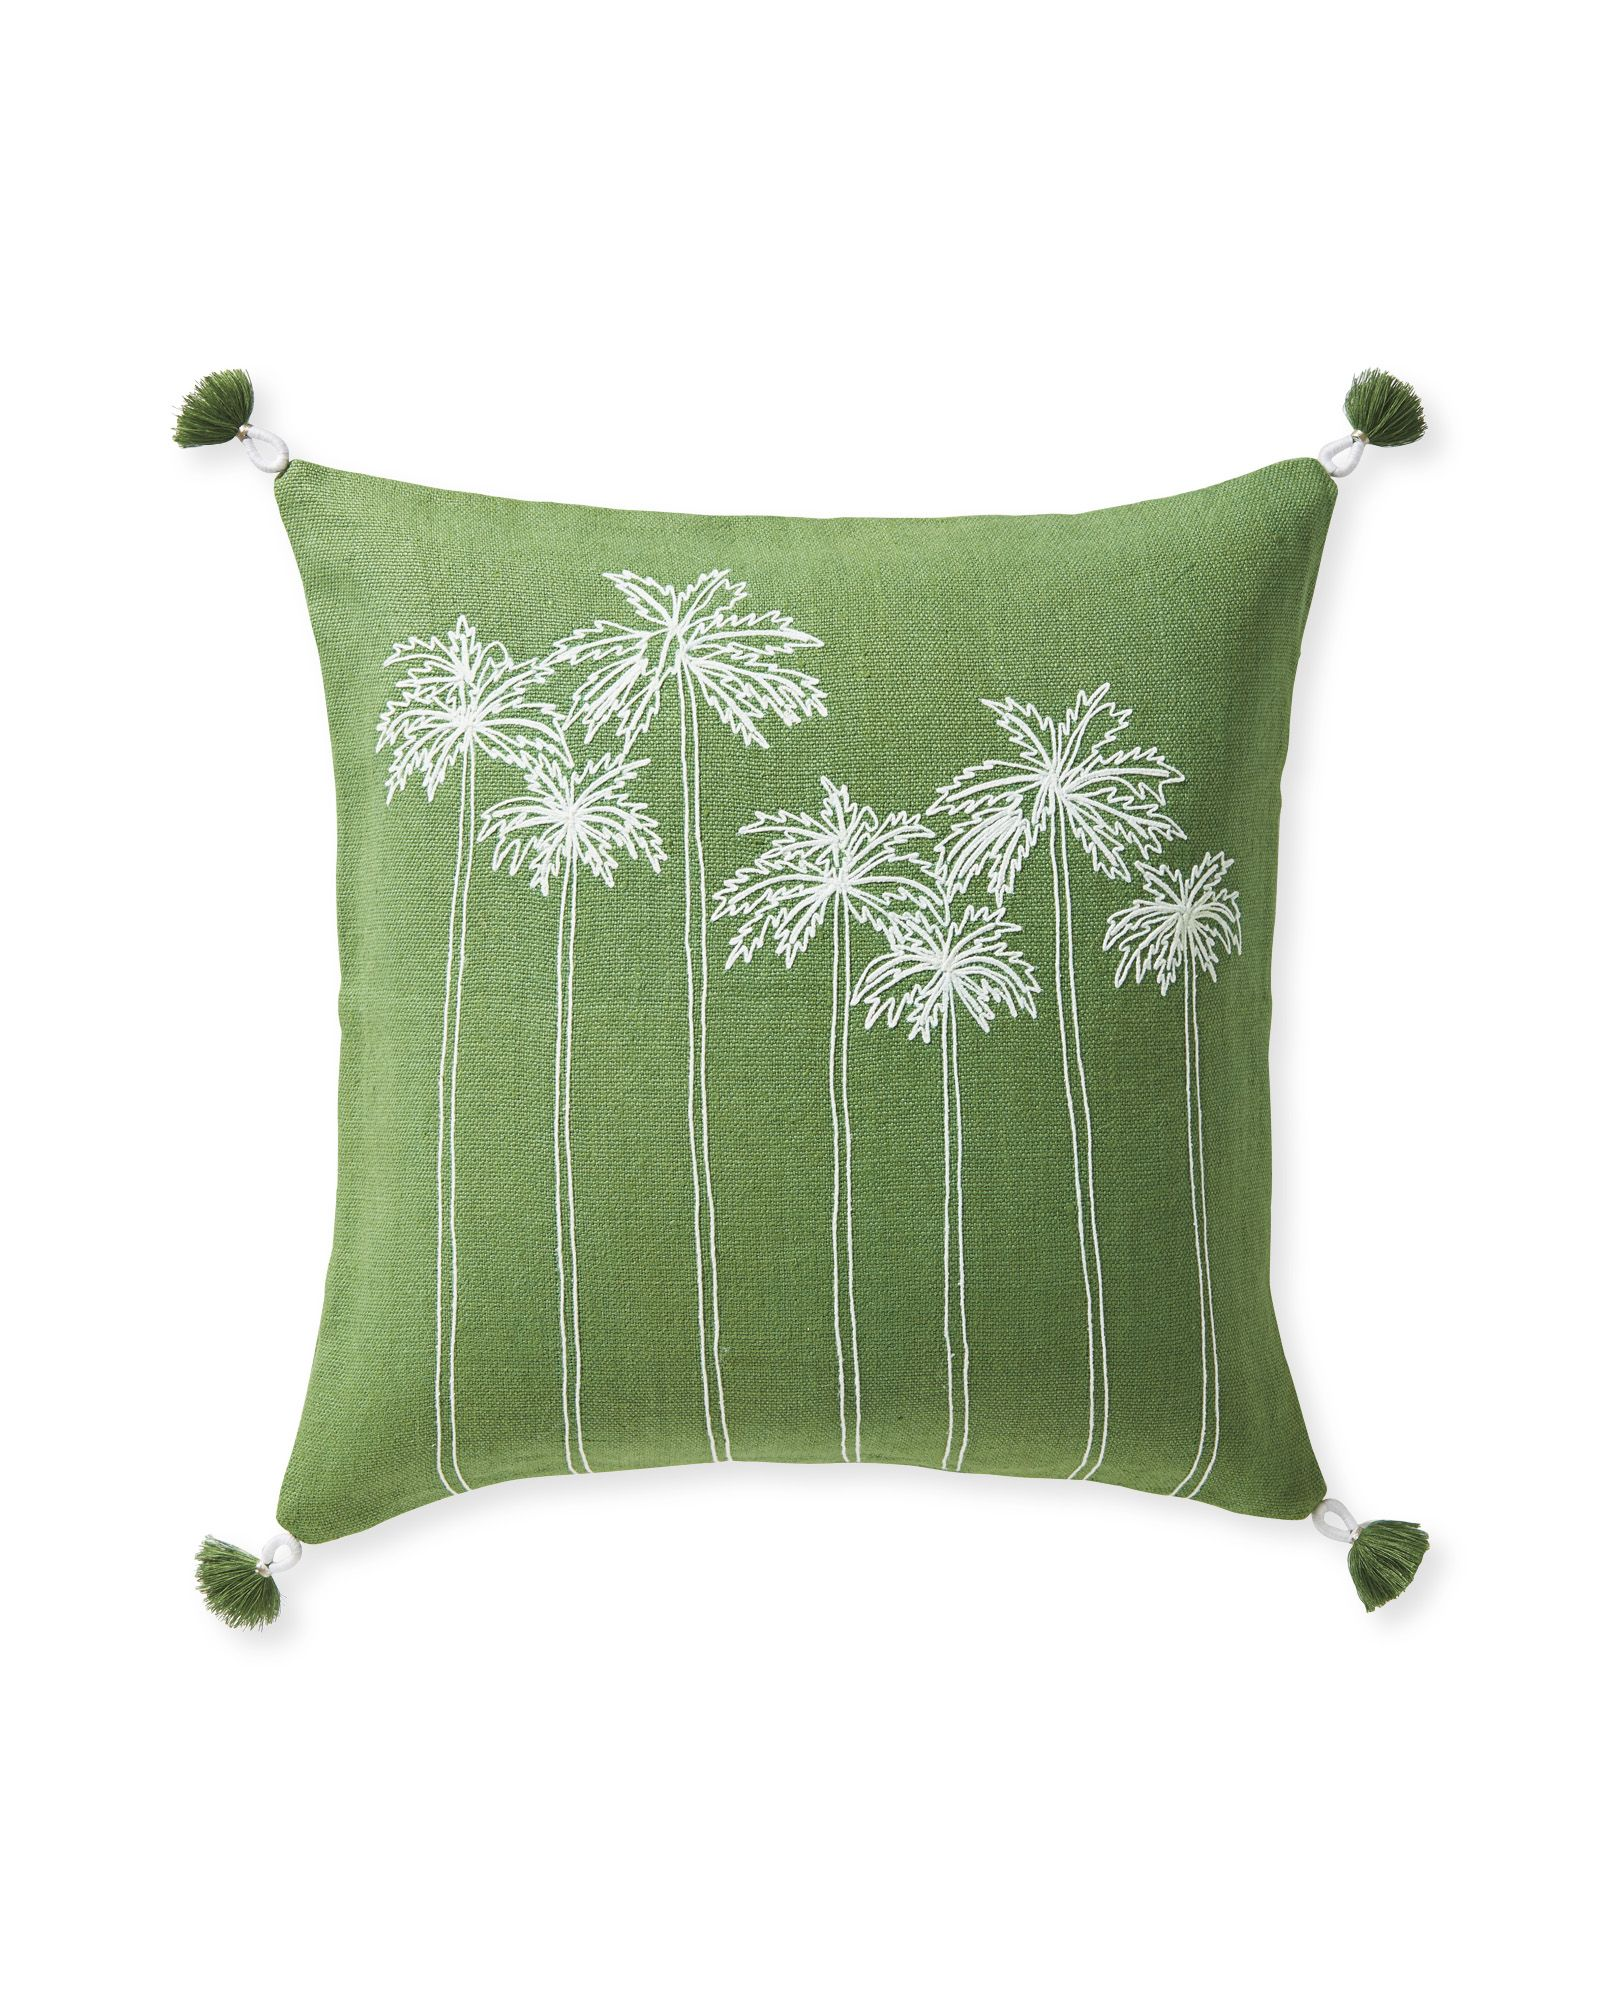 Seabreeze Pillow Cover in 2020 | Pillow